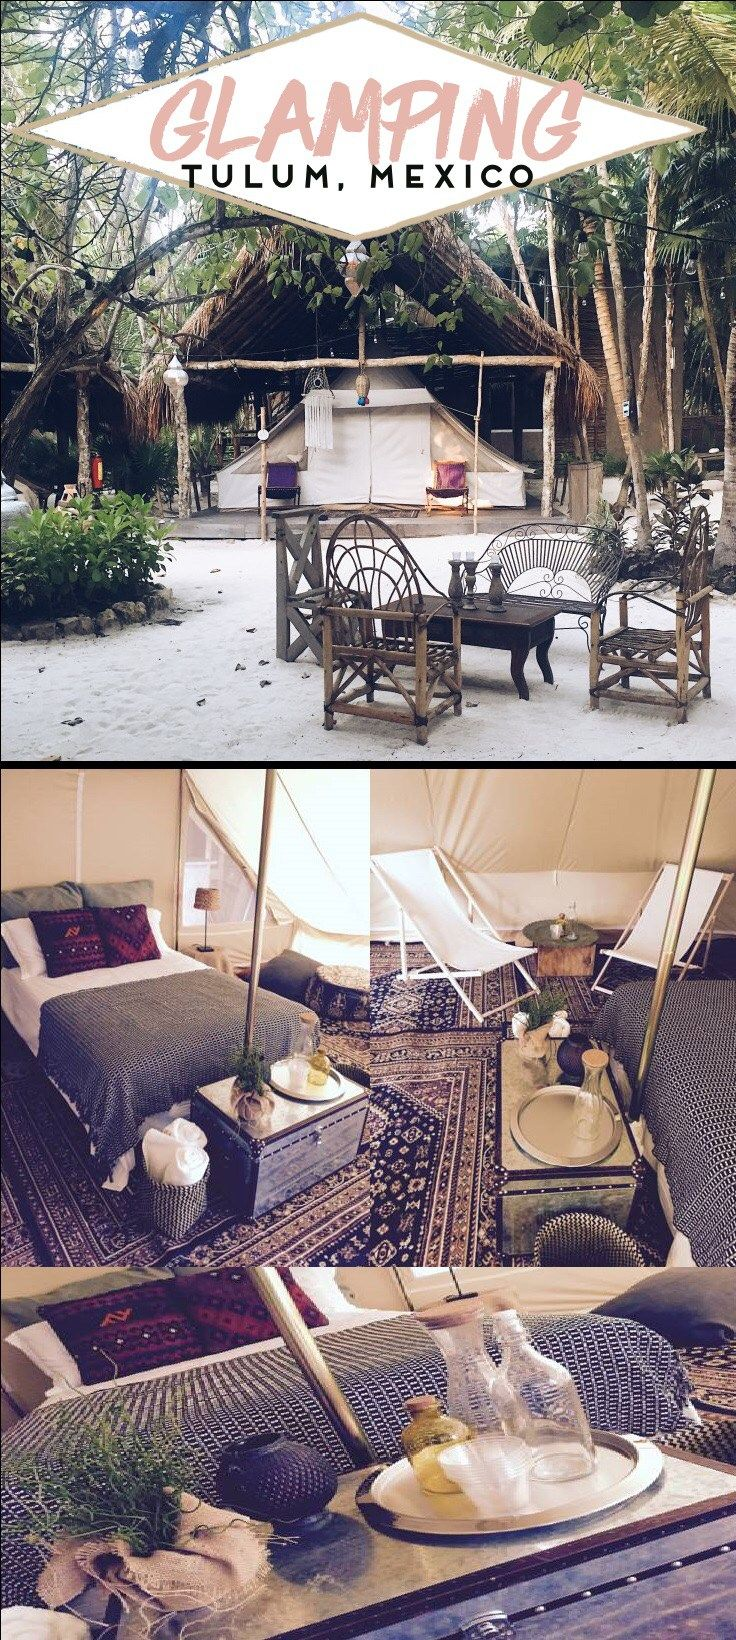 Introducing Glamping! AKA glamour camping or fancy camping or luxury camping, whatever you want to call it.